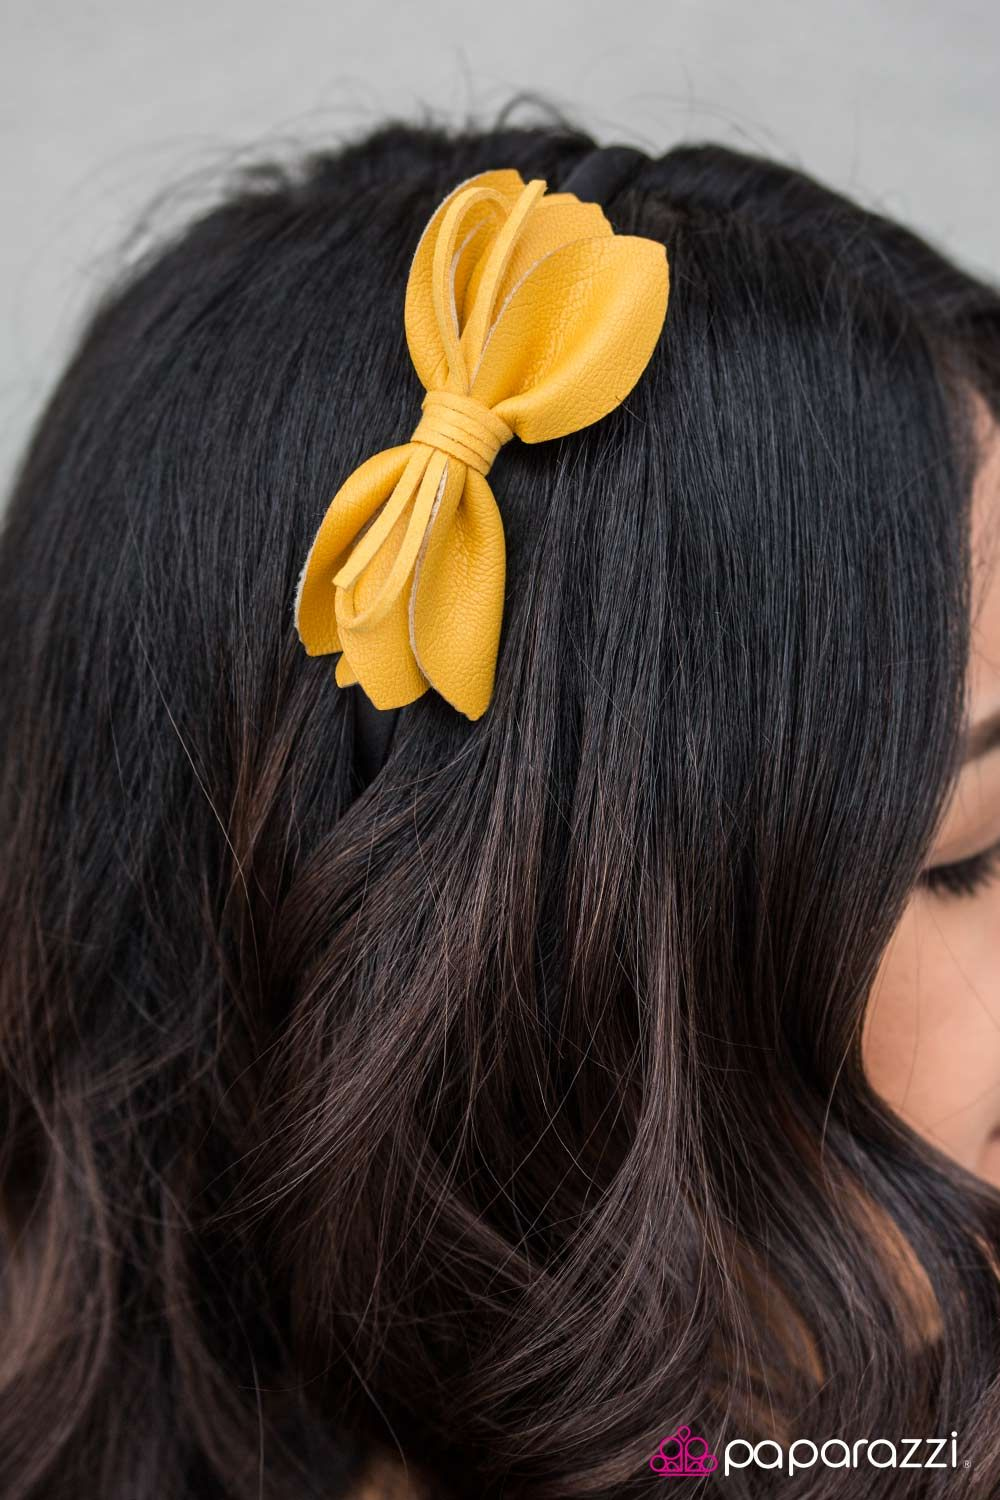 Black bow hair accessories - Runway Bound 5 Hair Accessories Headbands And Jewelry Stunning Yellow And Black